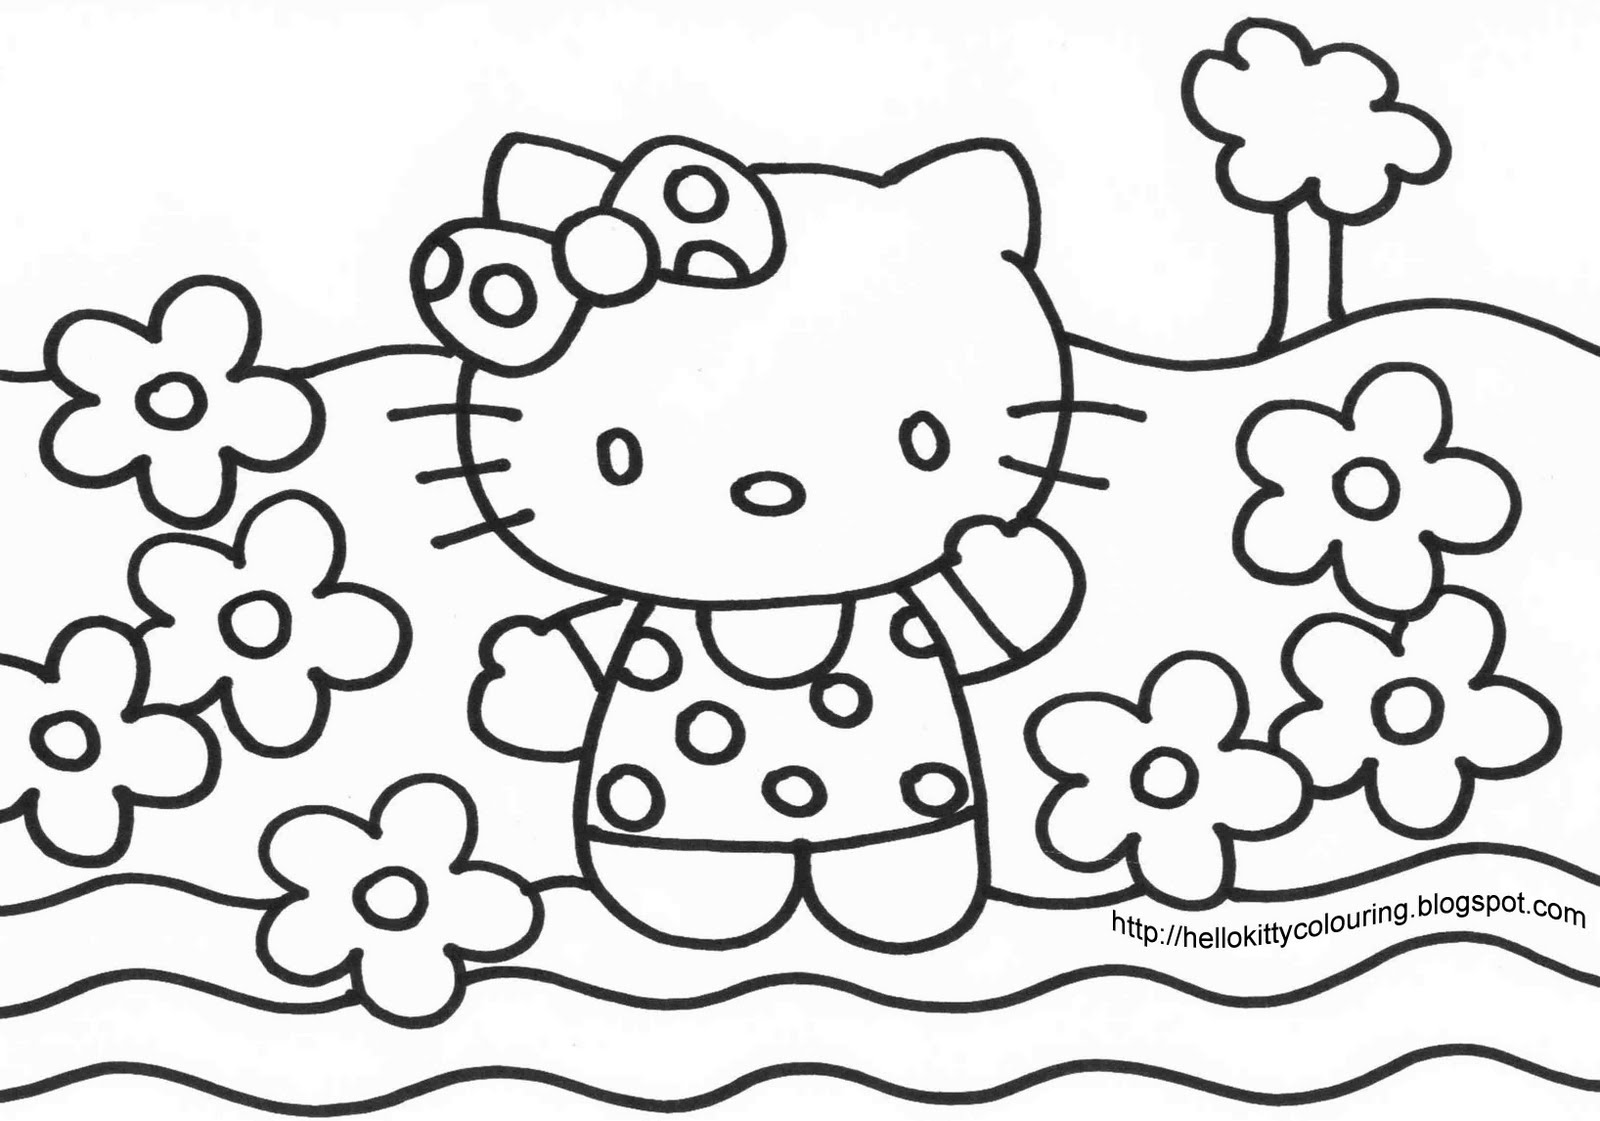 Hello Kitty Drawing Images At Getdrawings